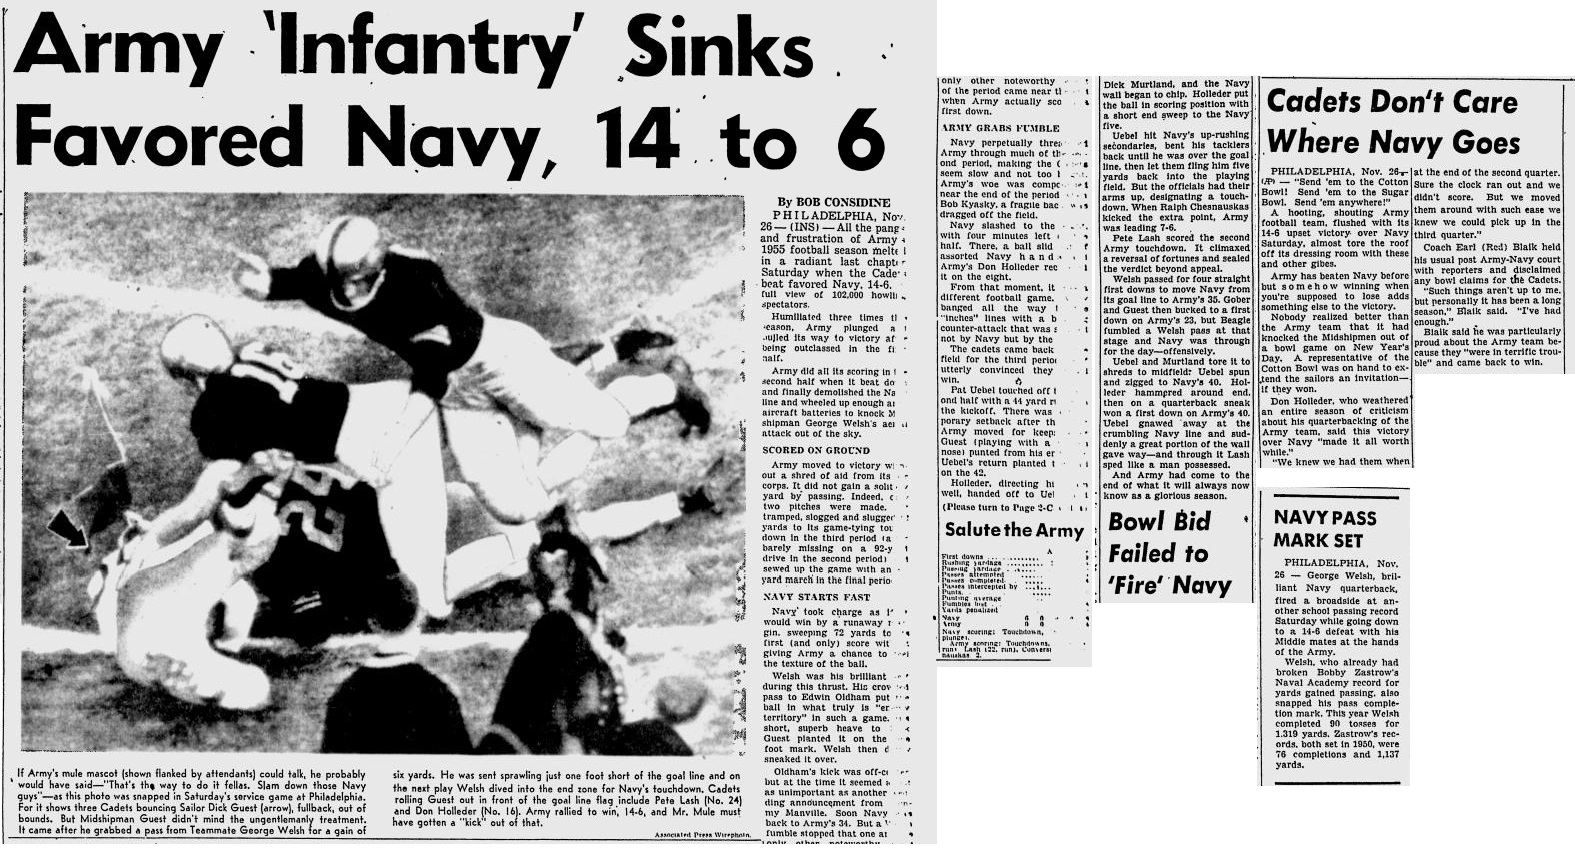 armyfb_1955_vsnavy_newburghnews_nov271955